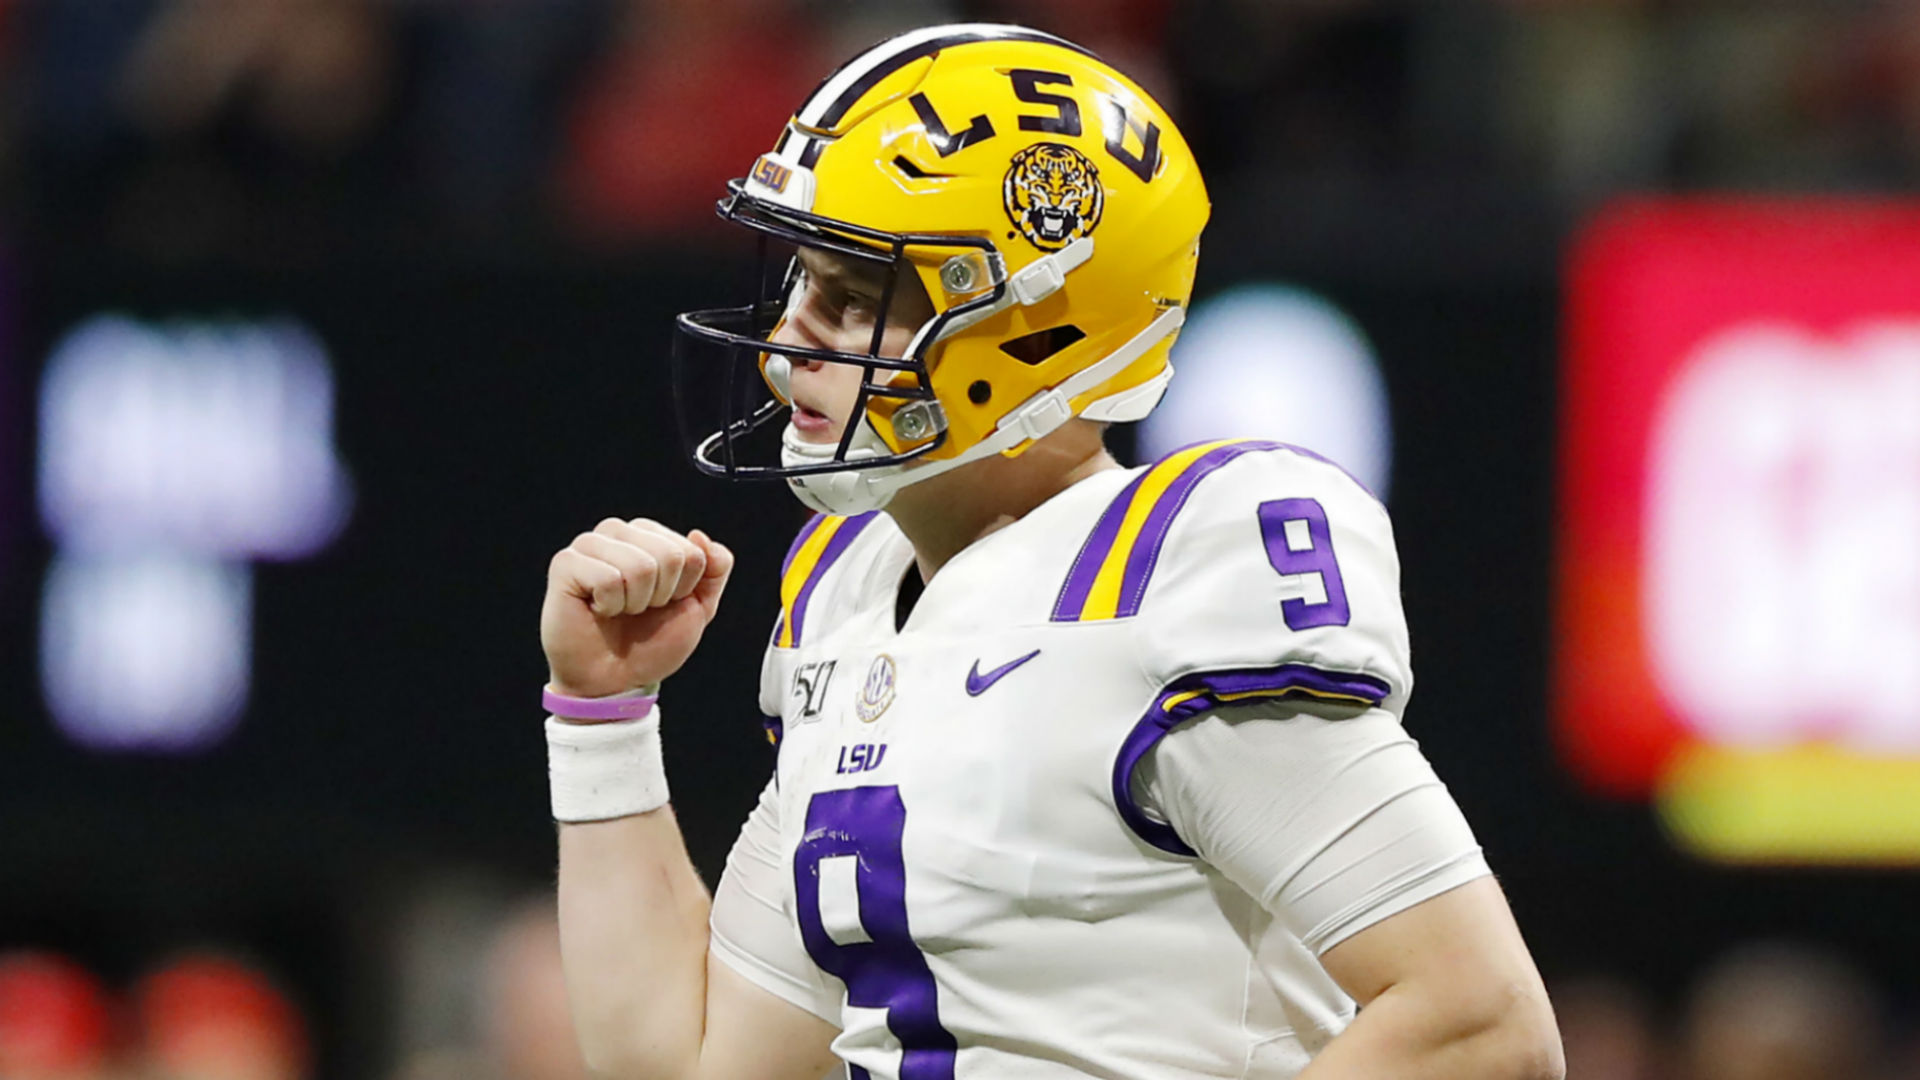 Heisman Trophy odds 2019: Will Joe Burrow challenge O.J. Simpson's record for most lopsided vote?